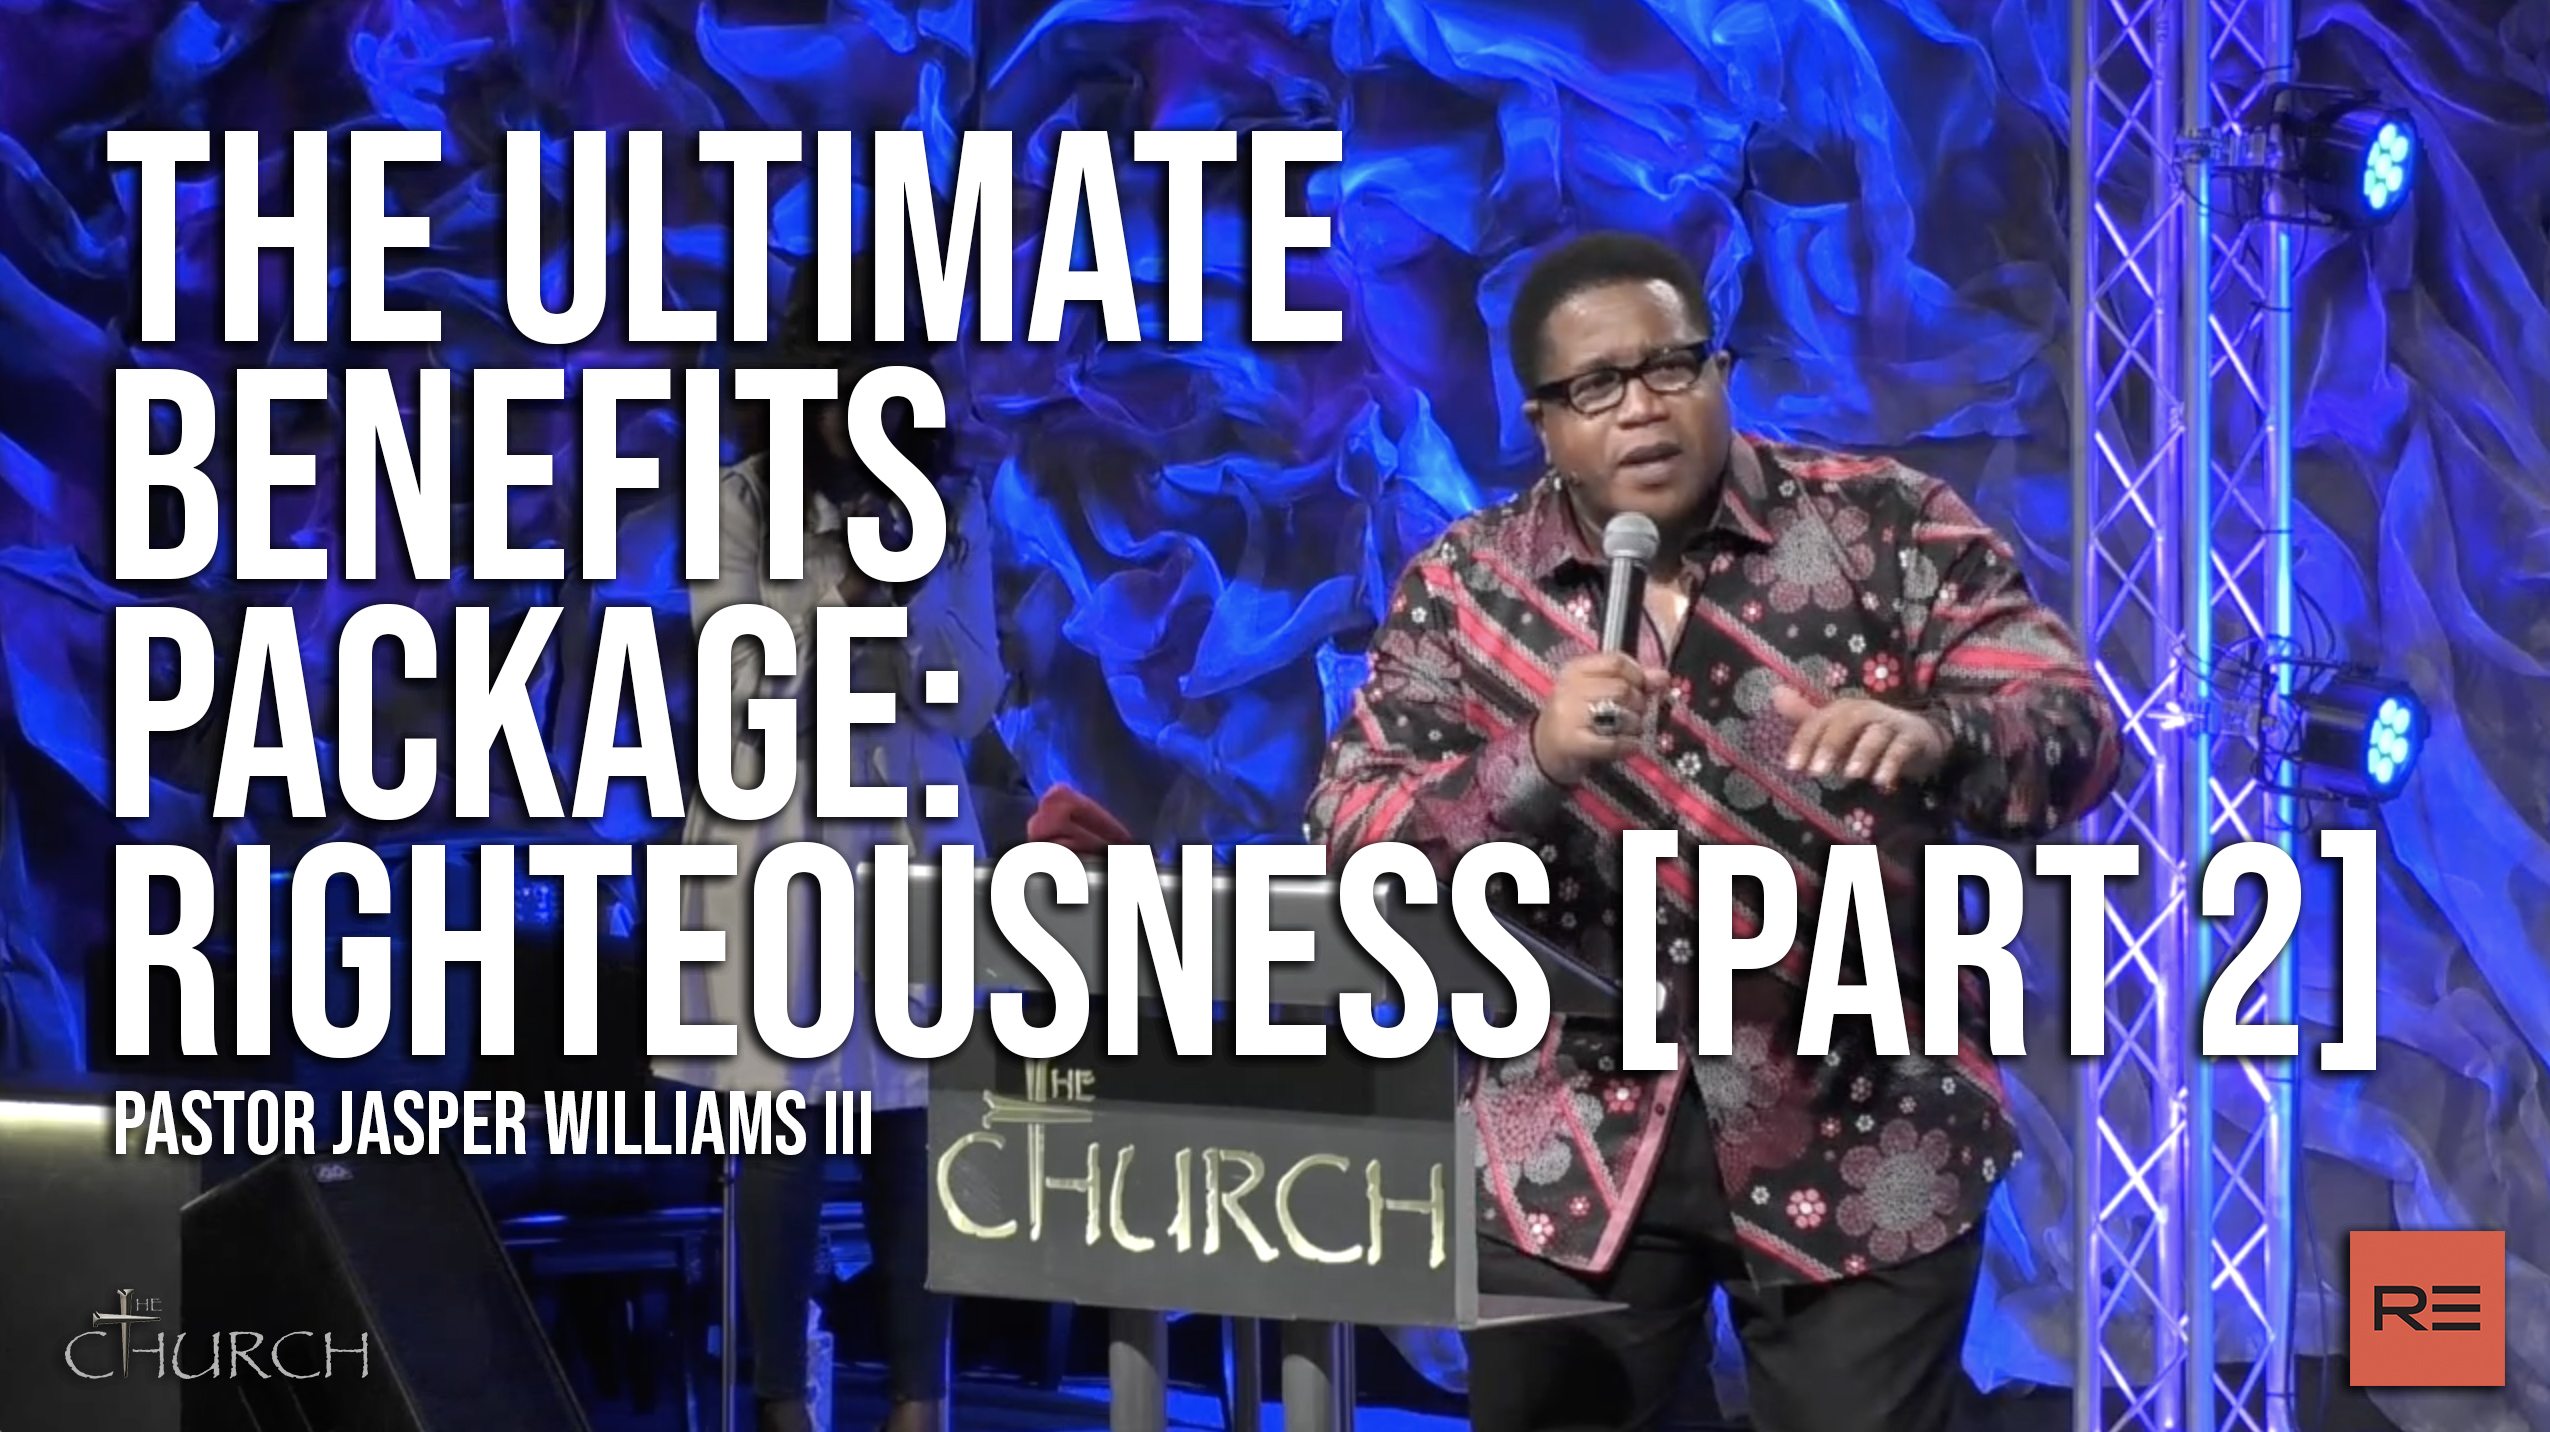 The Ultimate Benefits Package - Righteousness [Part 2] | Pastor Jasper Williams III